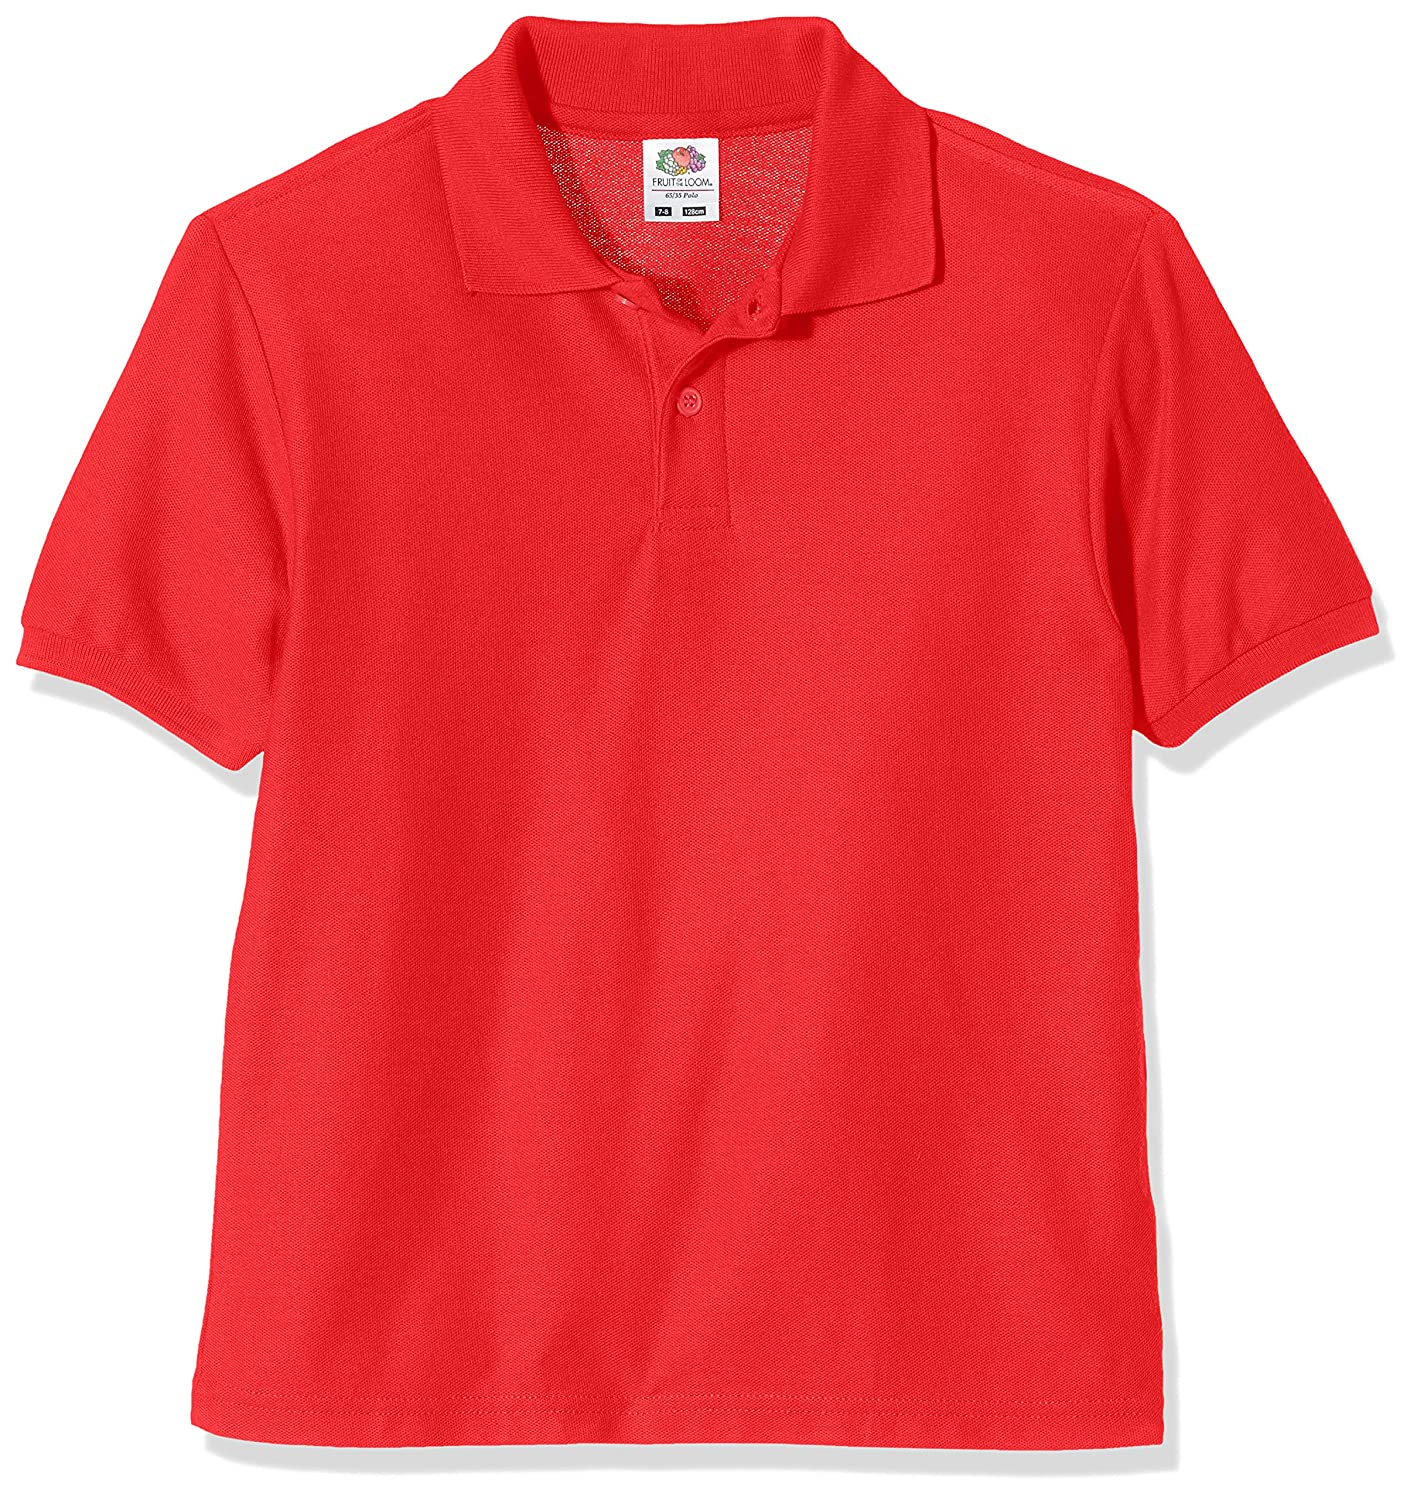 Fruit of the Loom Unisex Kids Polo Shirt 63-417-0